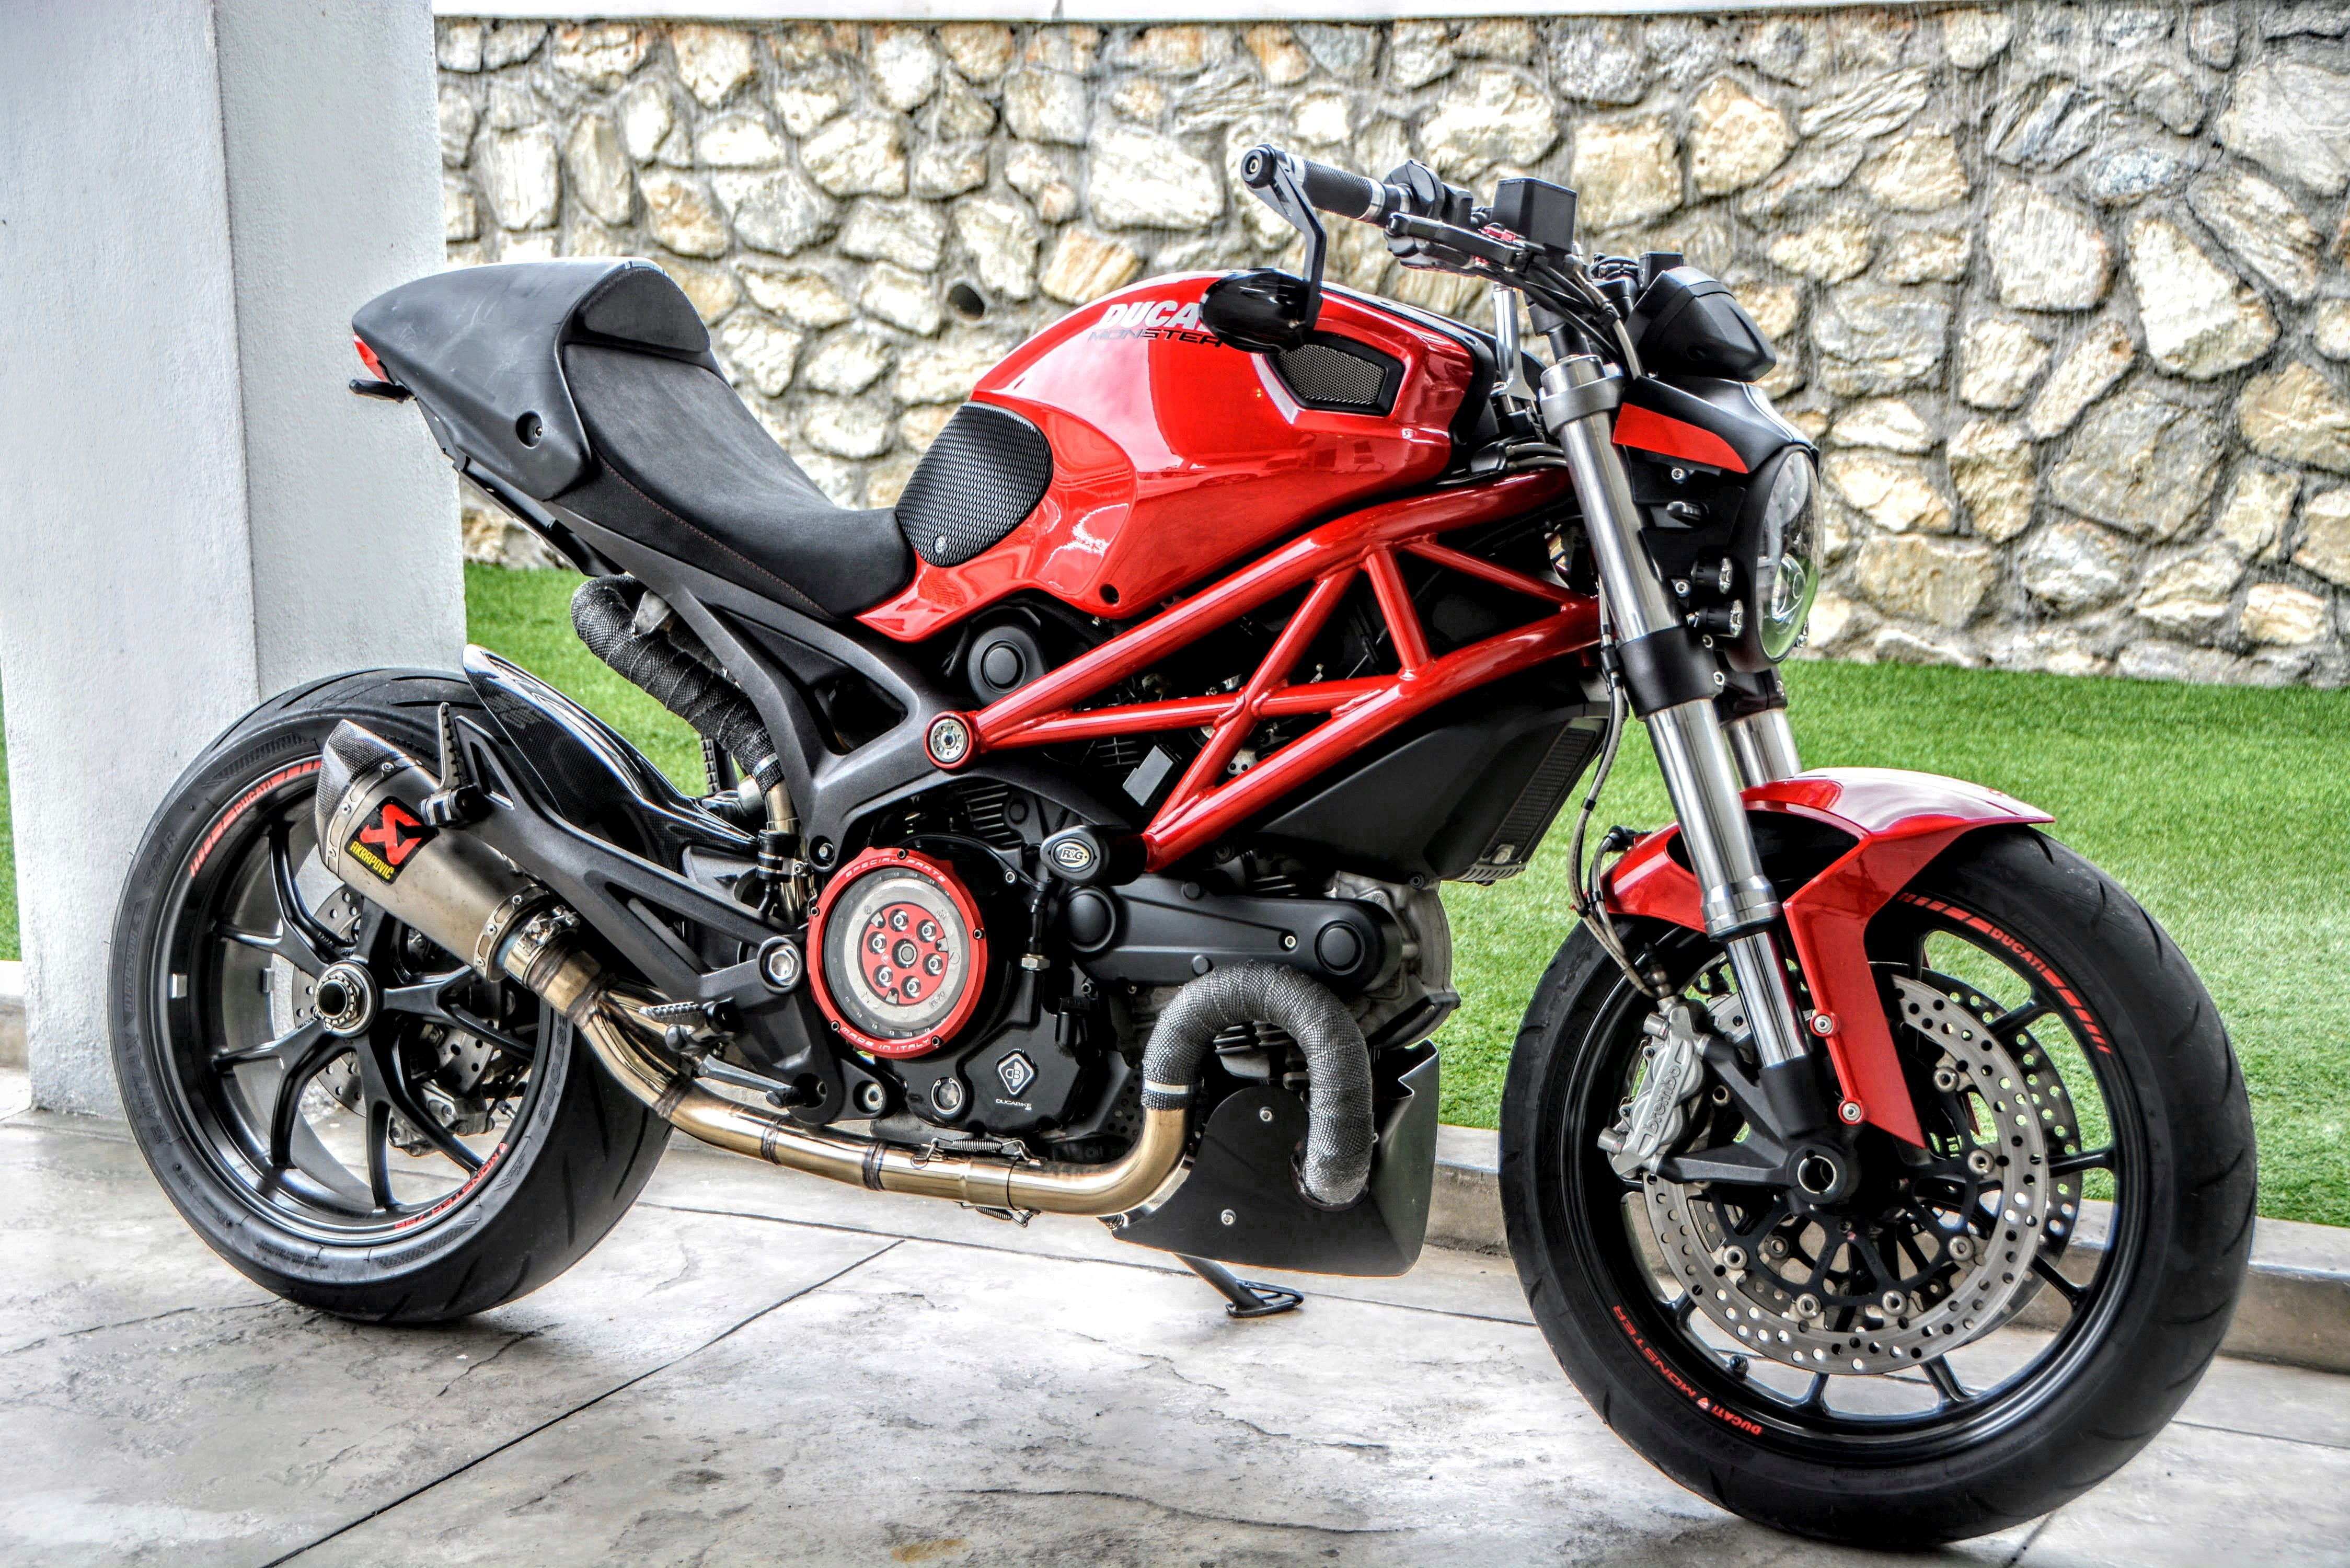 ducati monster 796 custom and headlight replacement by kenstomoto cafe racer street fighter. Black Bedroom Furniture Sets. Home Design Ideas